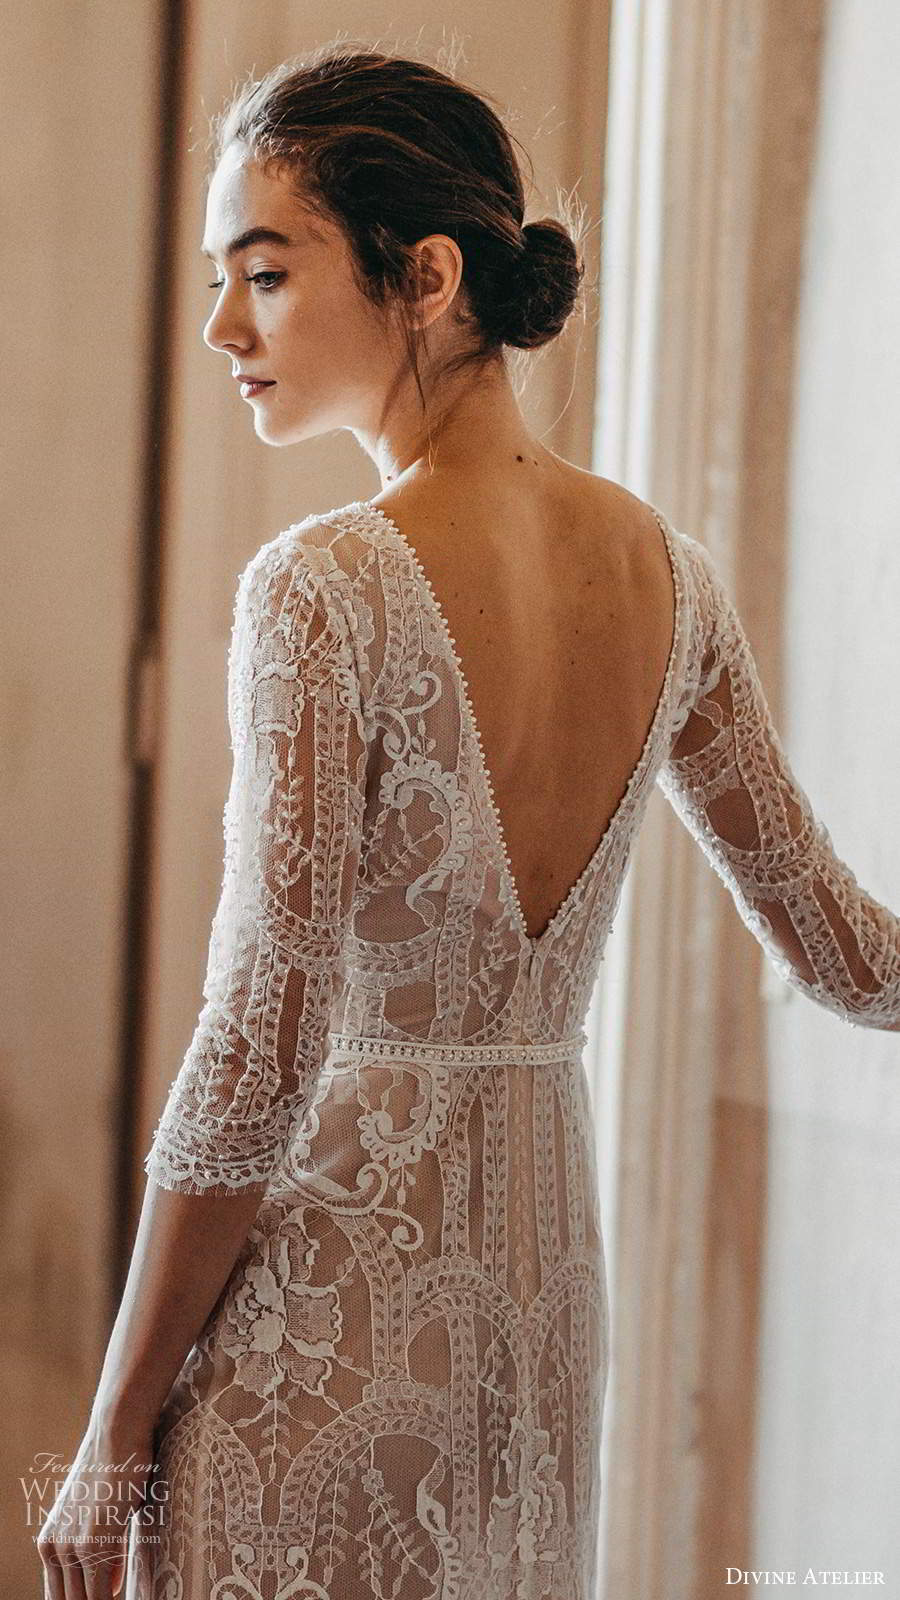 divine atelier 2020 bridal 3 quarter sleeves bateau neckline fully embellished elagnt a line wedding dress v back sweep train (5) zbv